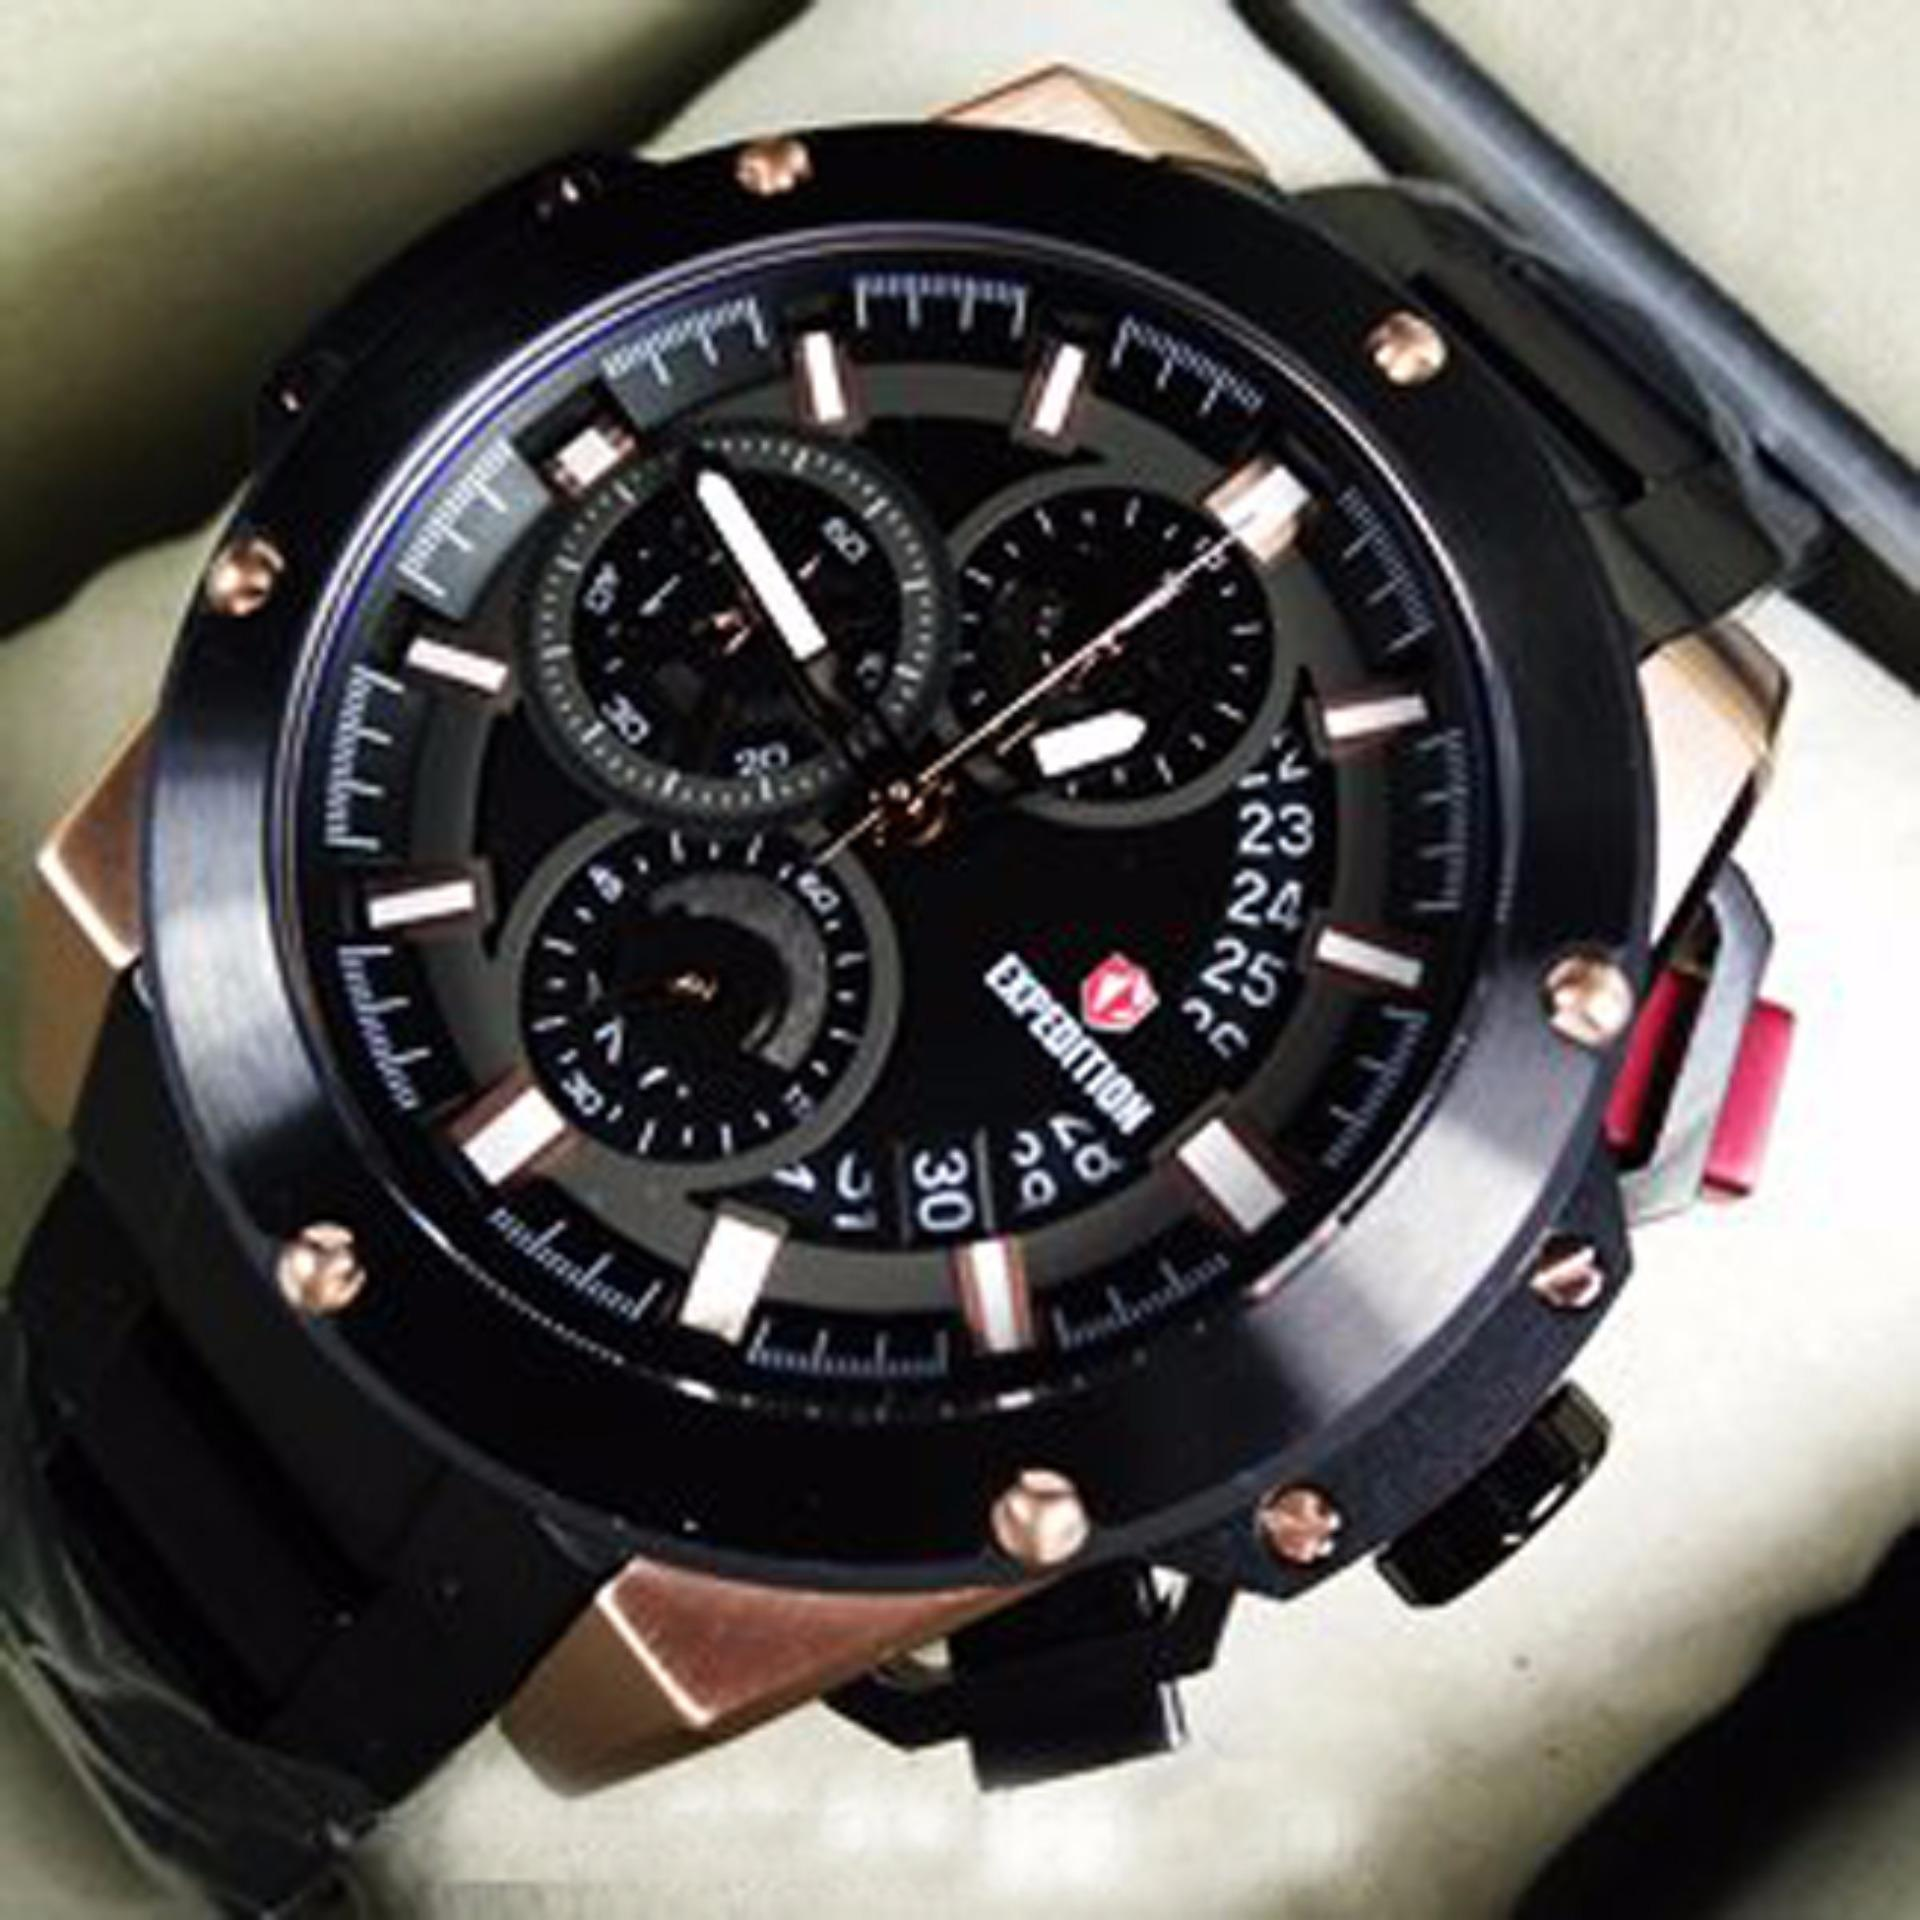 Expedition Ex089 J Jam Tangan Pria Kulit Original Daftar Harga 6721 Black Merah E6694mrrb Rose Limited Edition